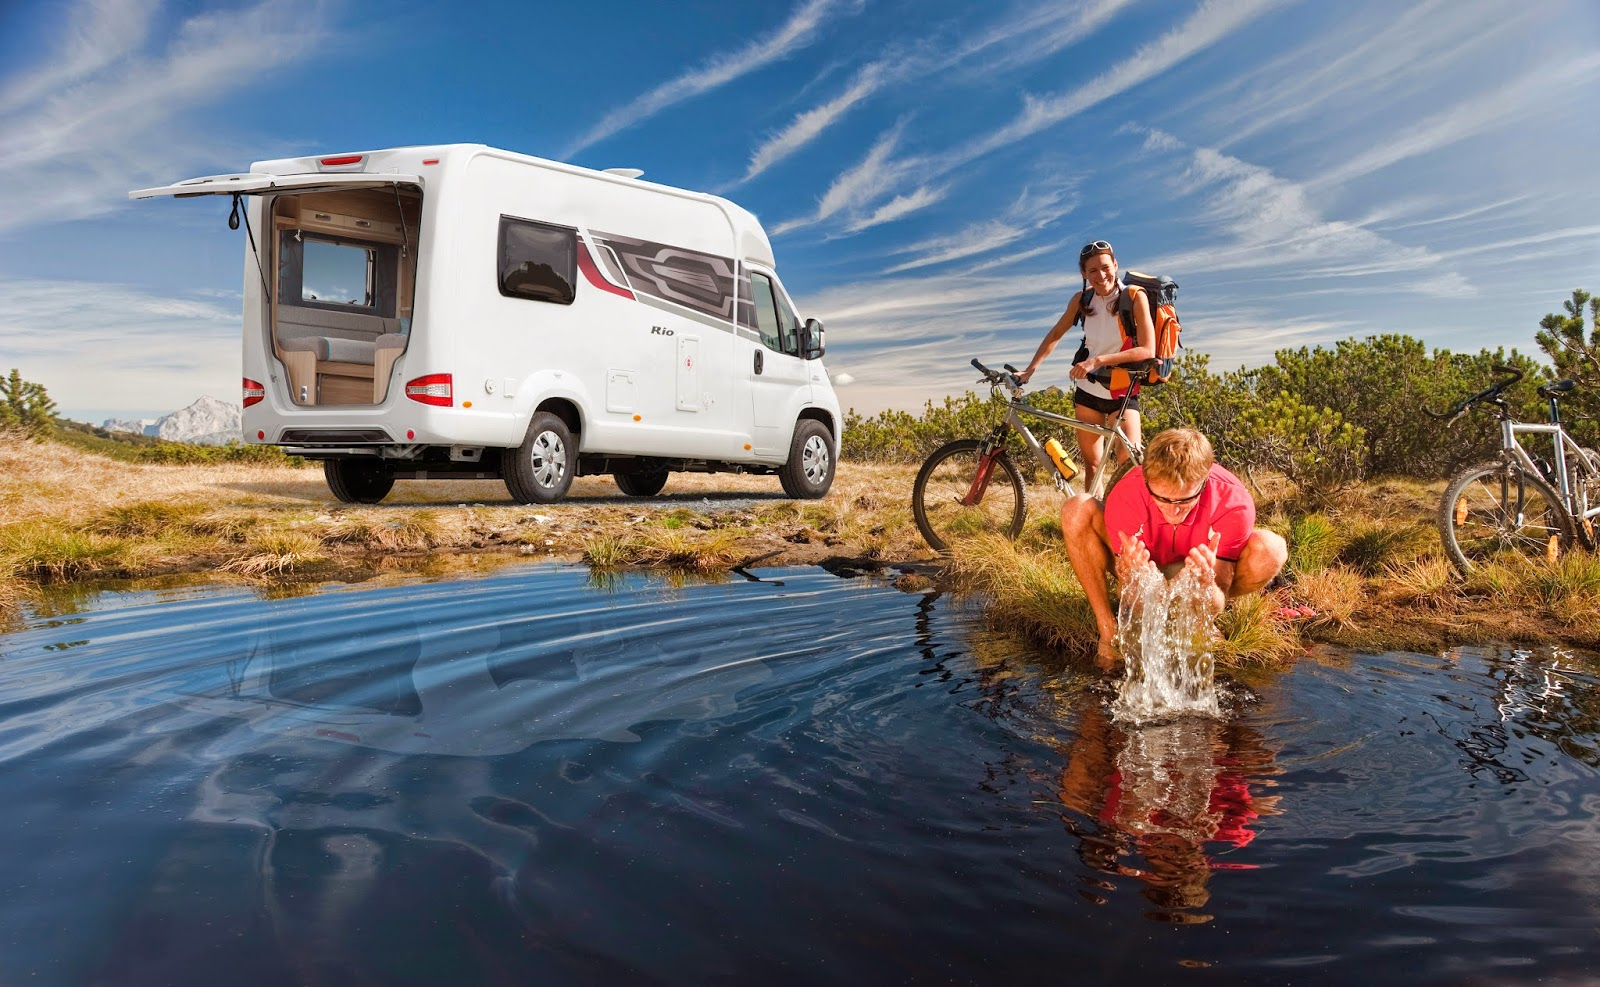 http://www.swiftgroup.co.uk/motorhomes/swift/rio